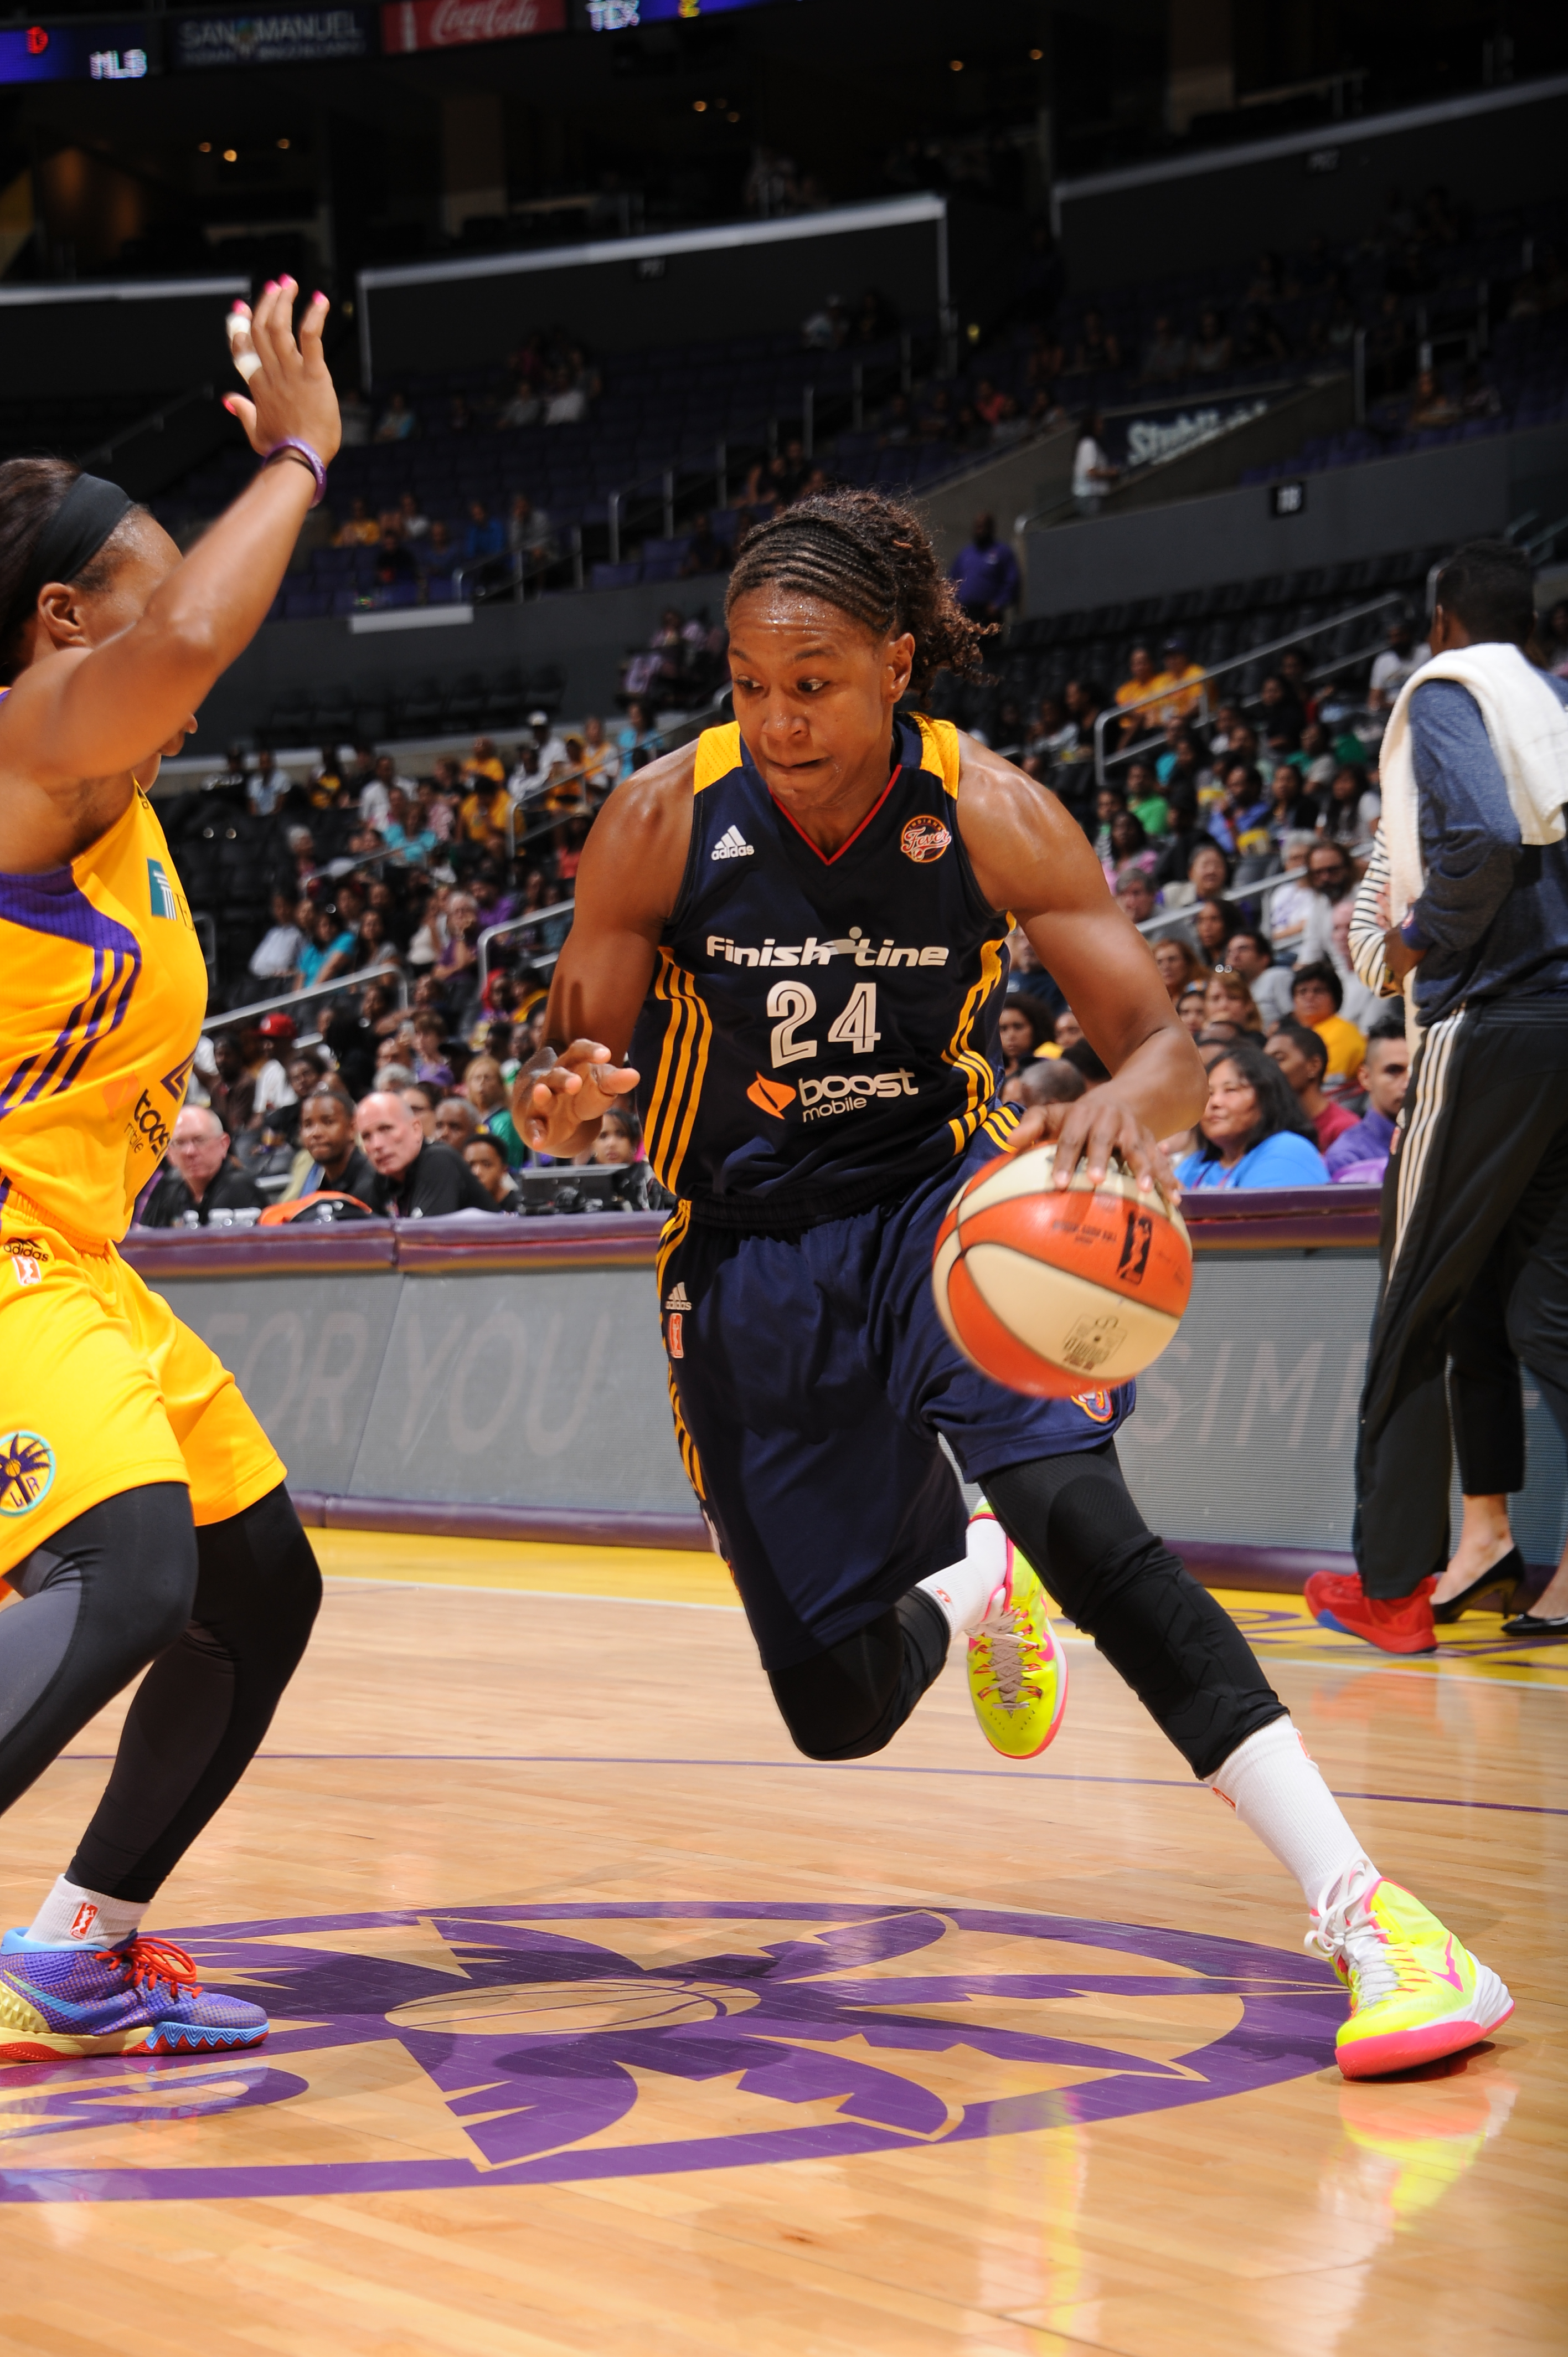 LOS ANGELES, CA - AUGUST 18: Tamika Catchings #24 of the Indiana Fever drives to the basket against the Los Angeles Sparks on August 18, 2015 at STAPLES Center in Los Angeles, California.  (Photo by Juan Ocampo/NBAE via Getty Images)